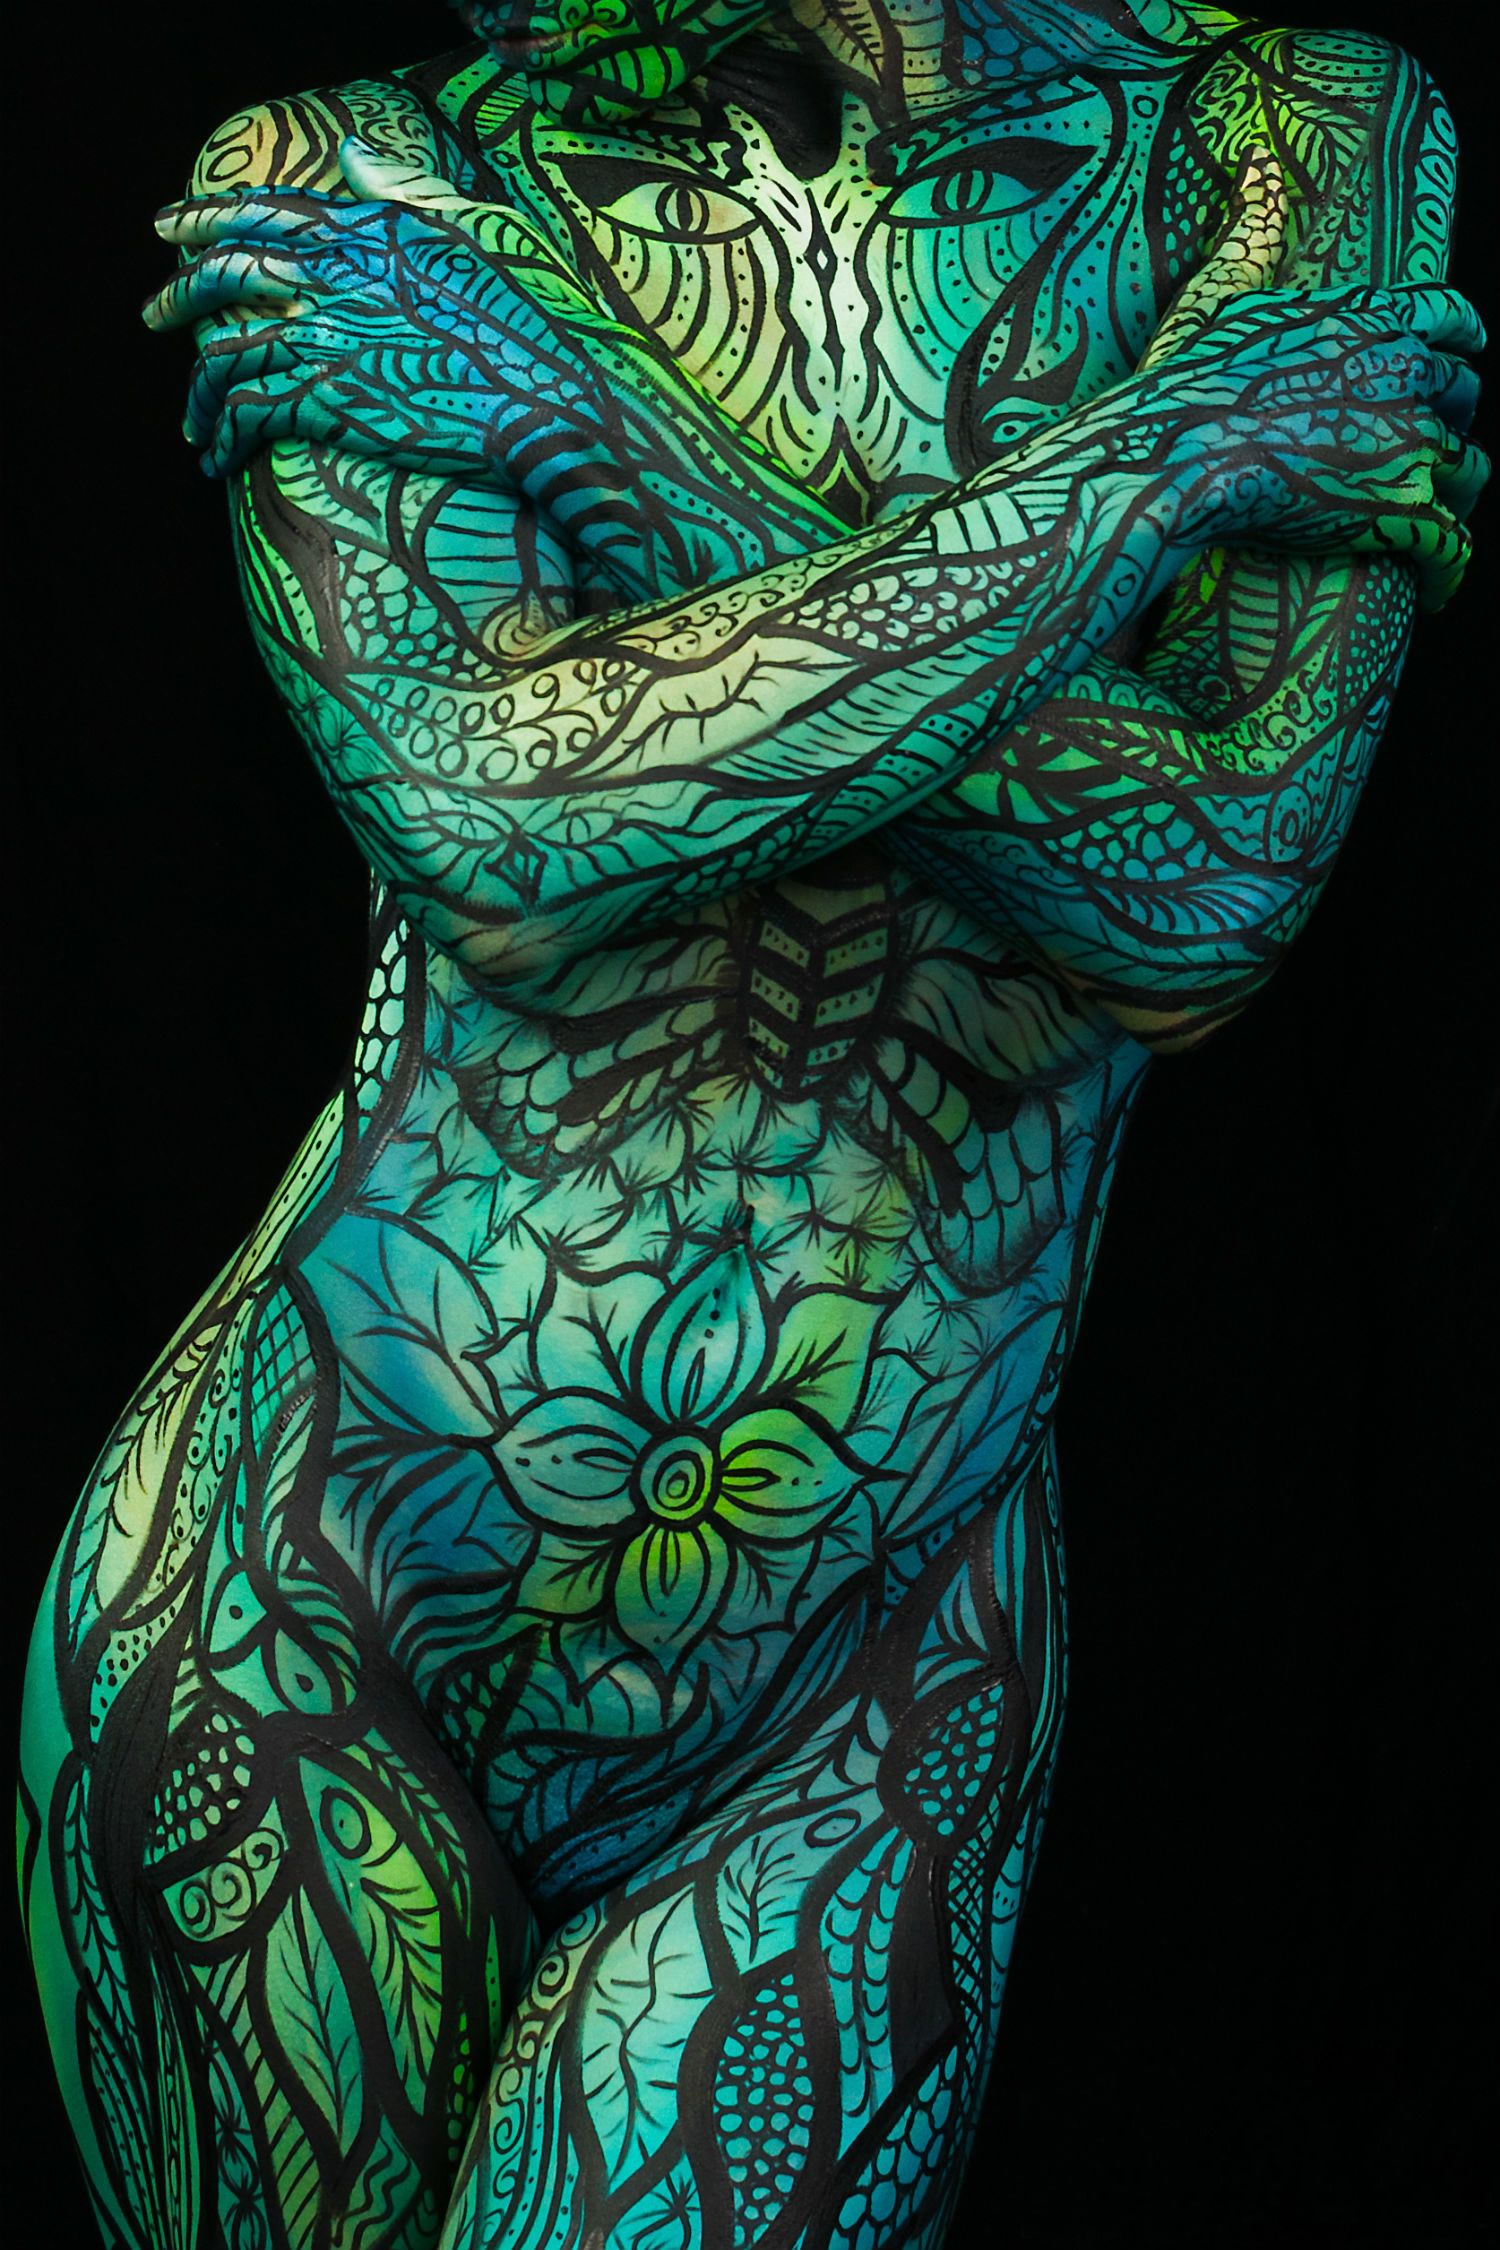 A Human Motorcycle In Body Paint Green Bodies Body Paint And - Trina merry creates amazing body art illusions ever seen